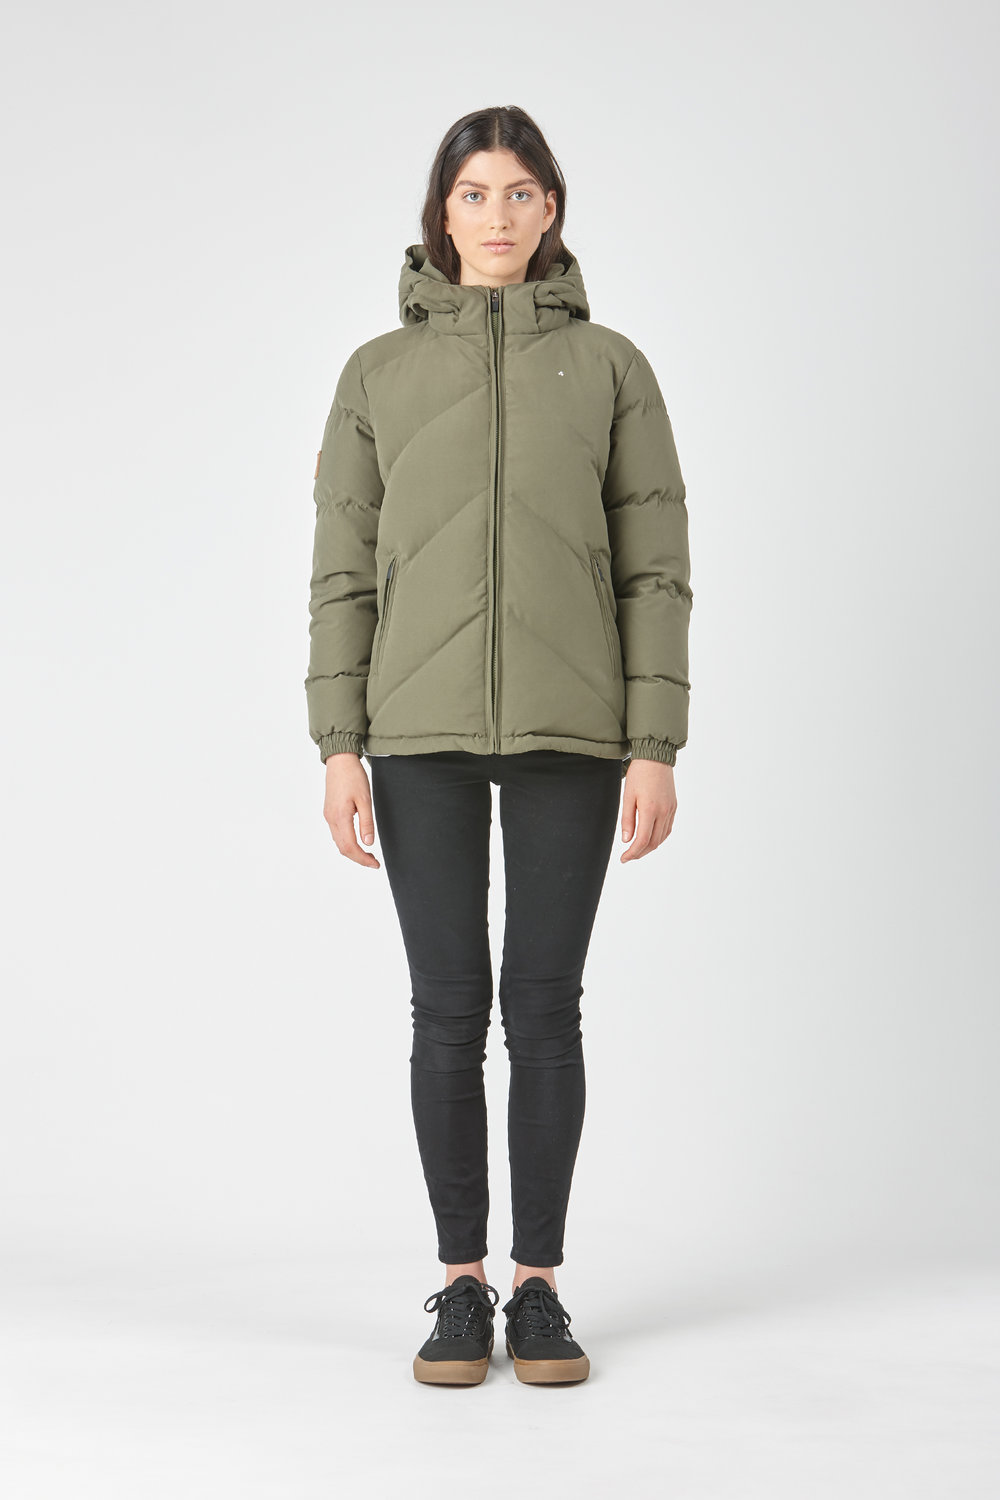 Huffer_OW-17_W-Classic-Down-Jacket_Olive-01.jpg